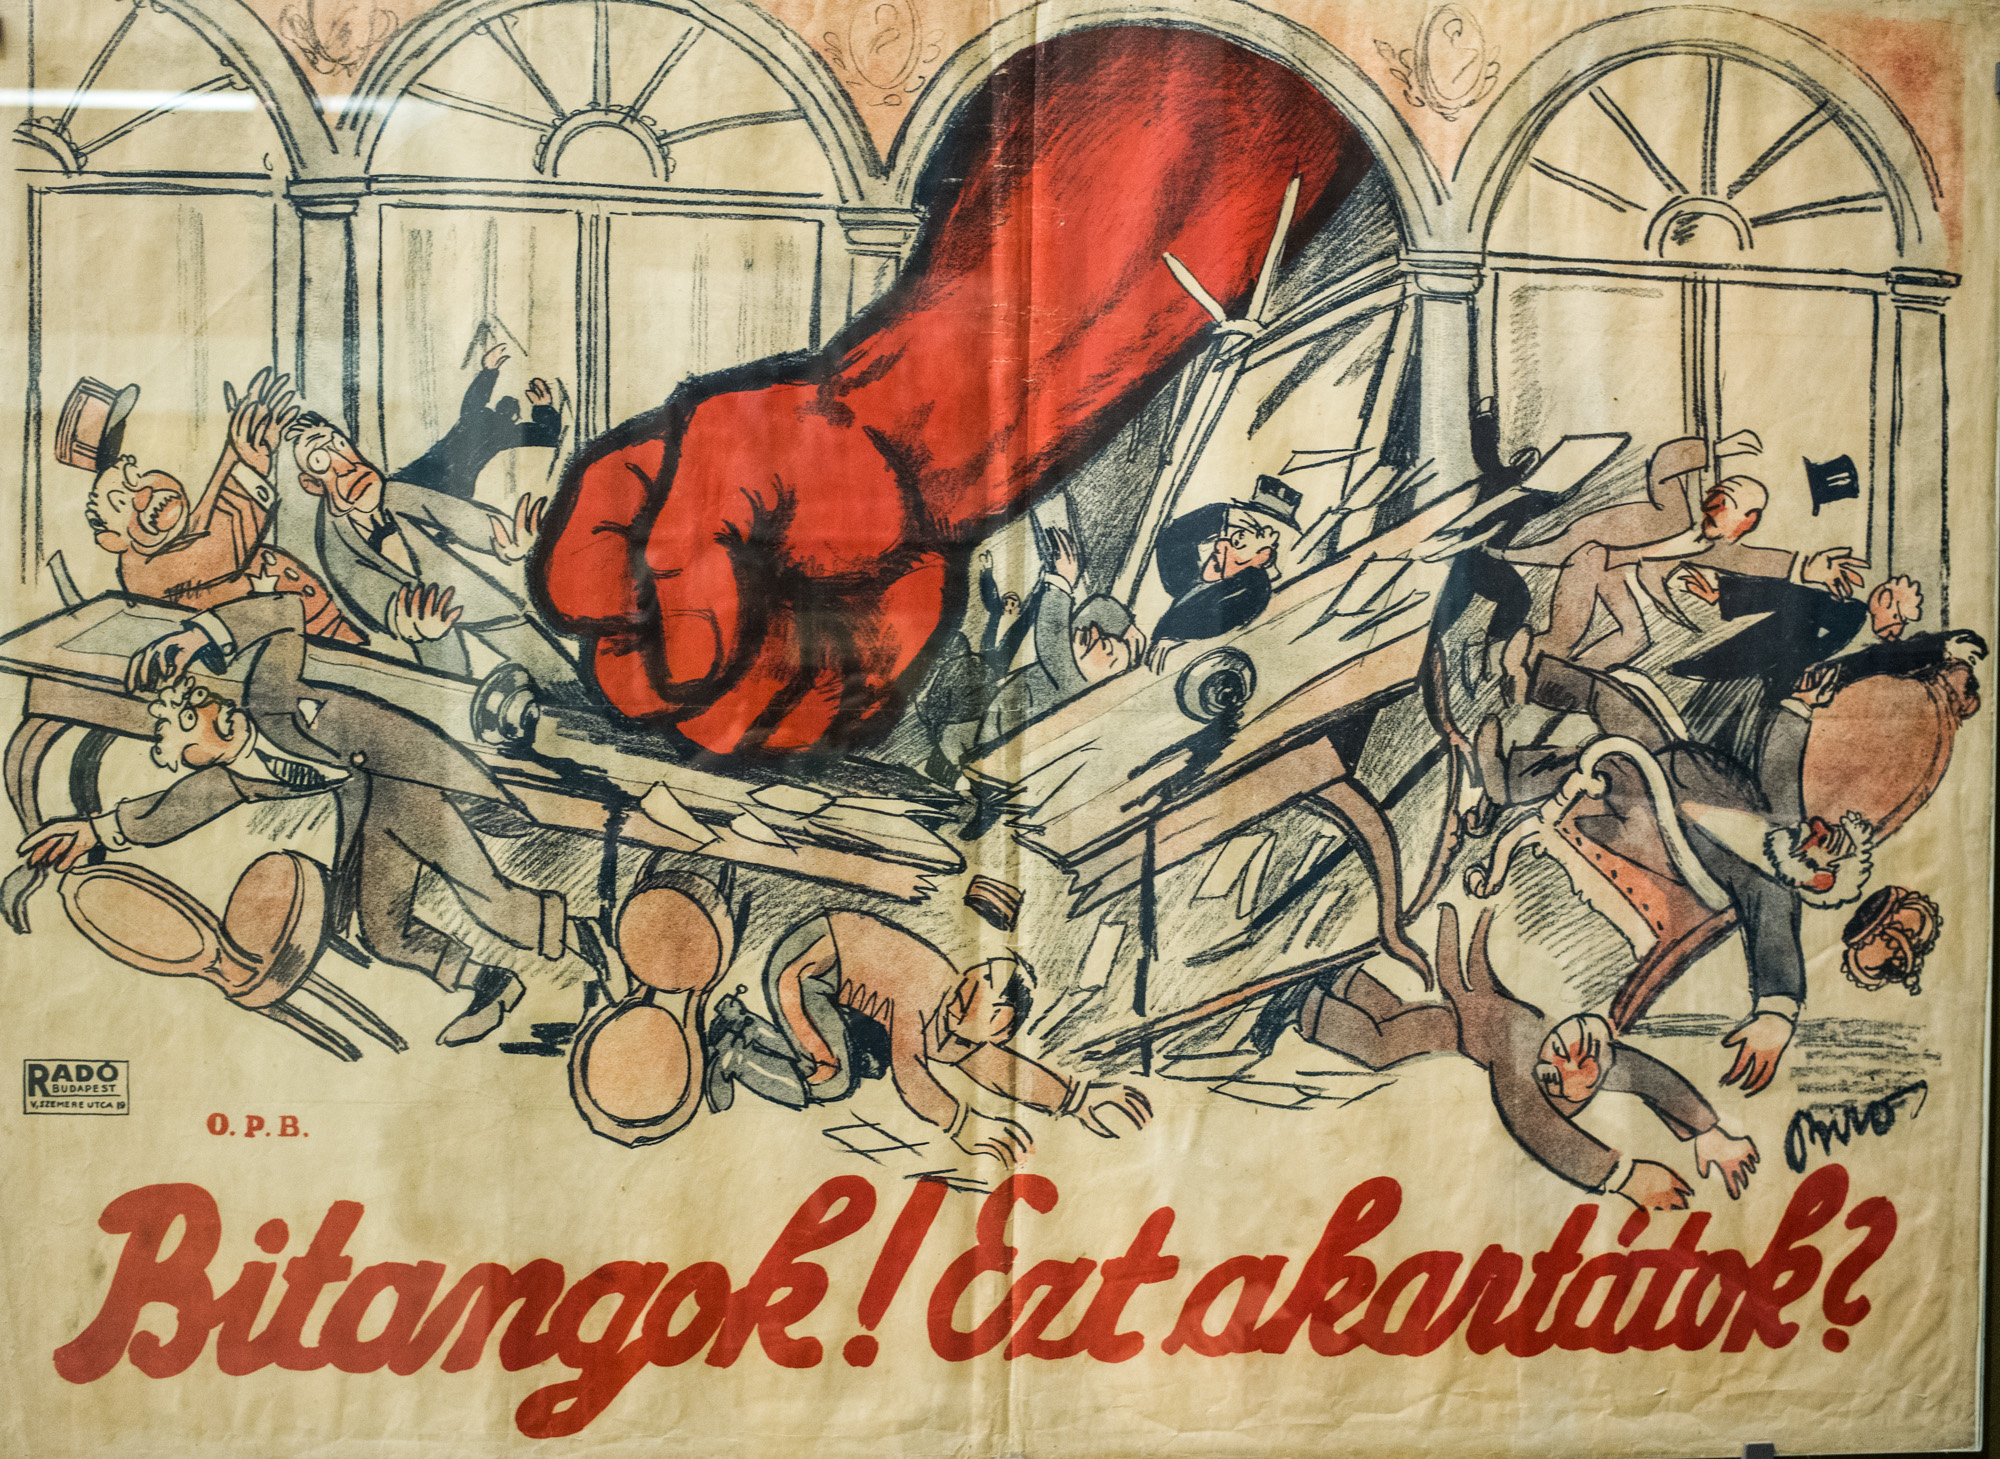 Poster from the communist era. On display in the Hungarian National Museum